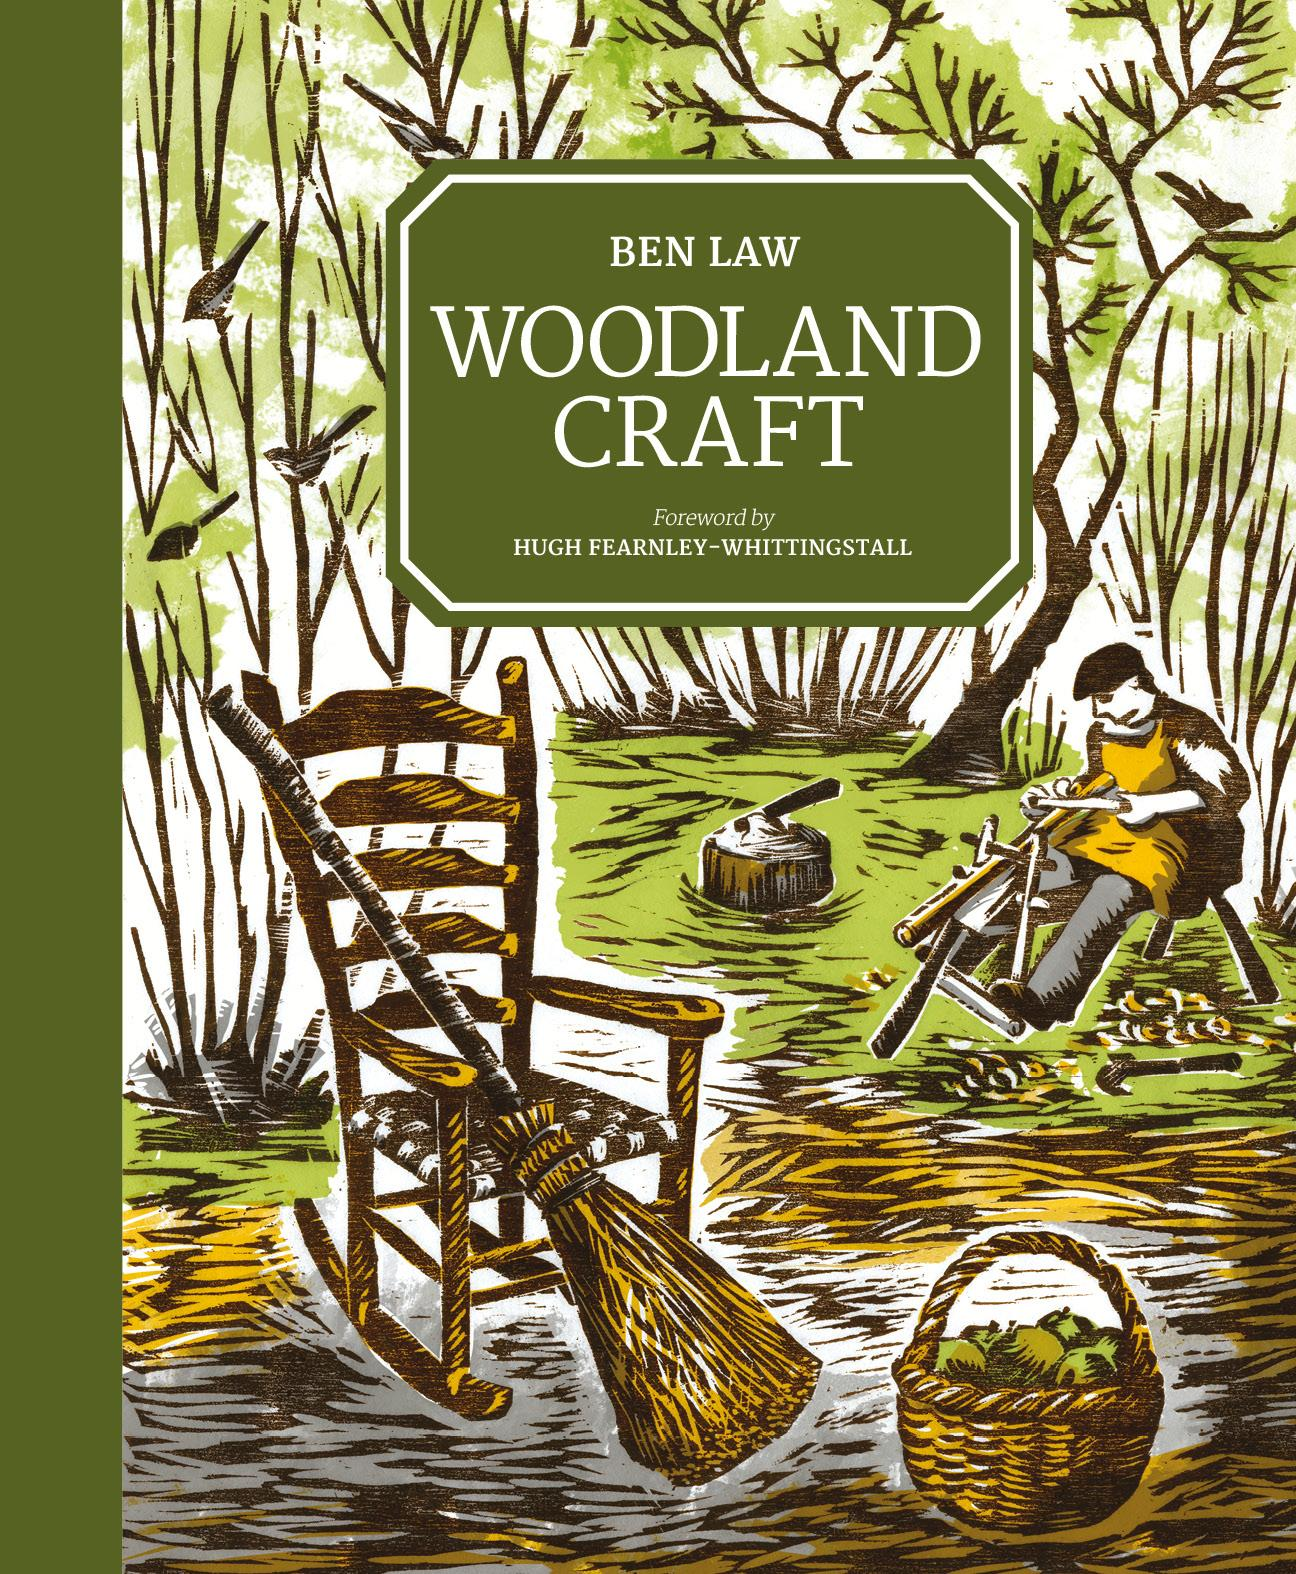 Woodland Craft (Hardcover) Ben Law